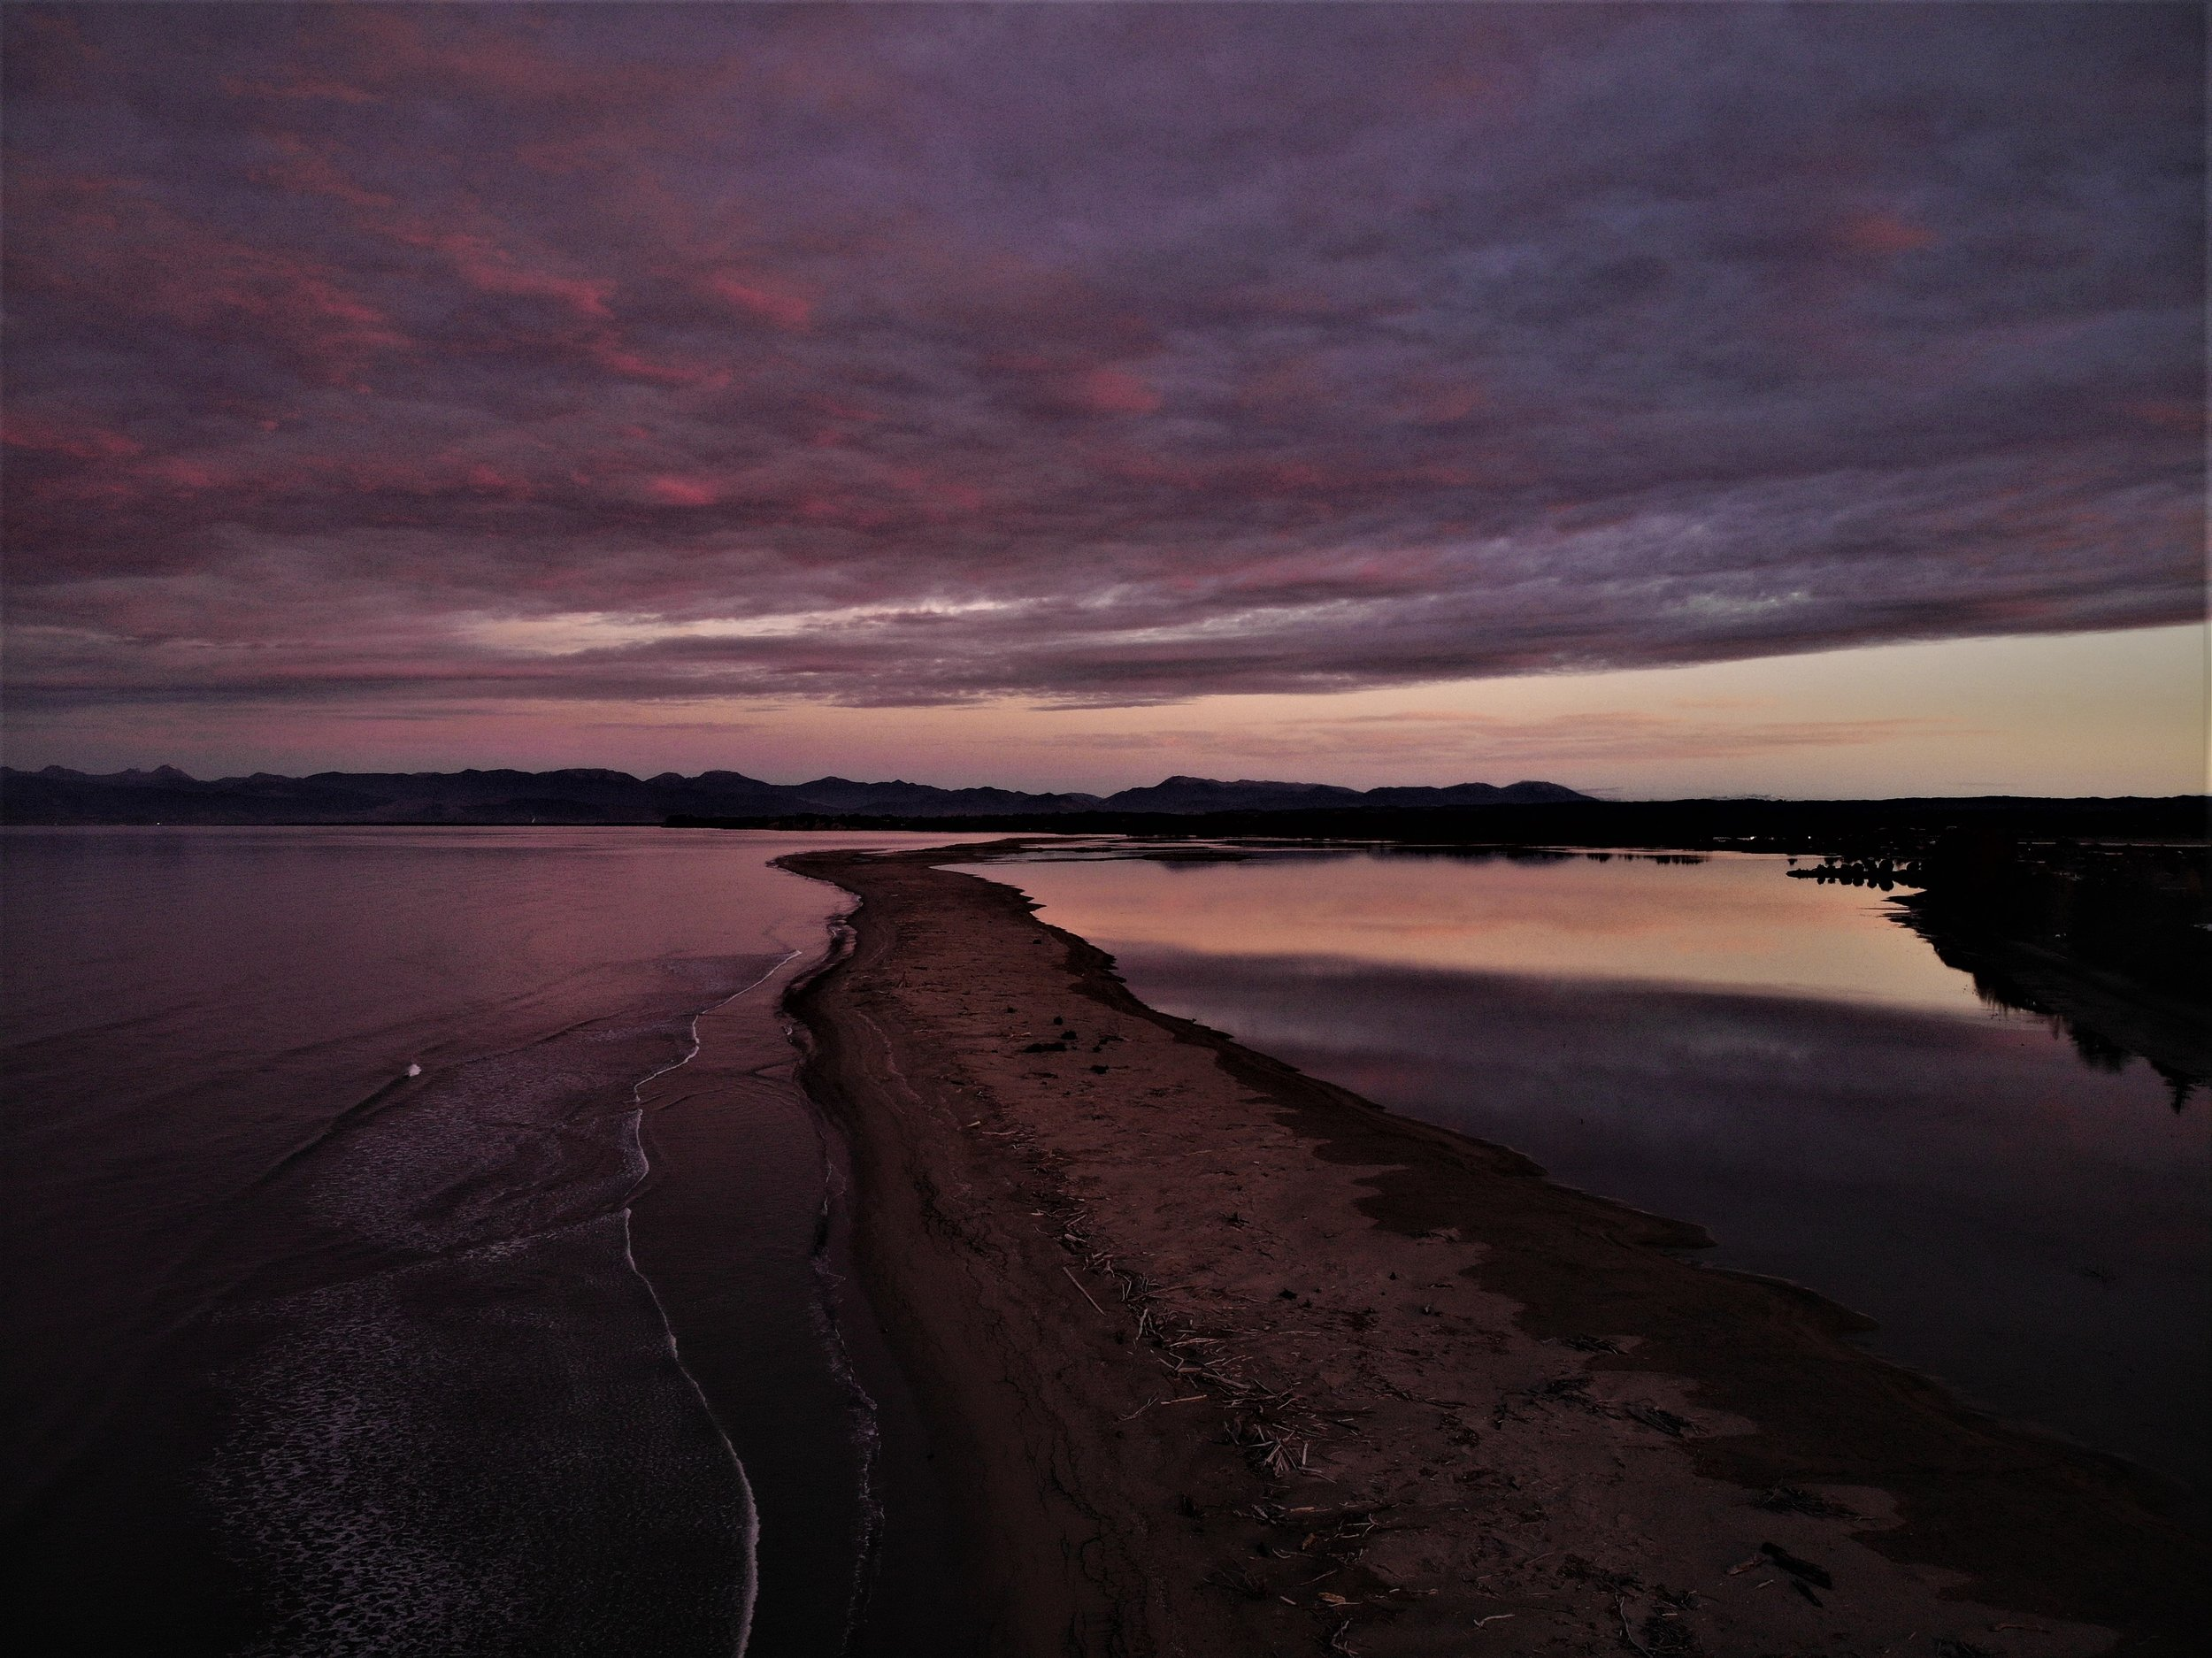 Flying the drone over the Mouteka sand spit at dusk.